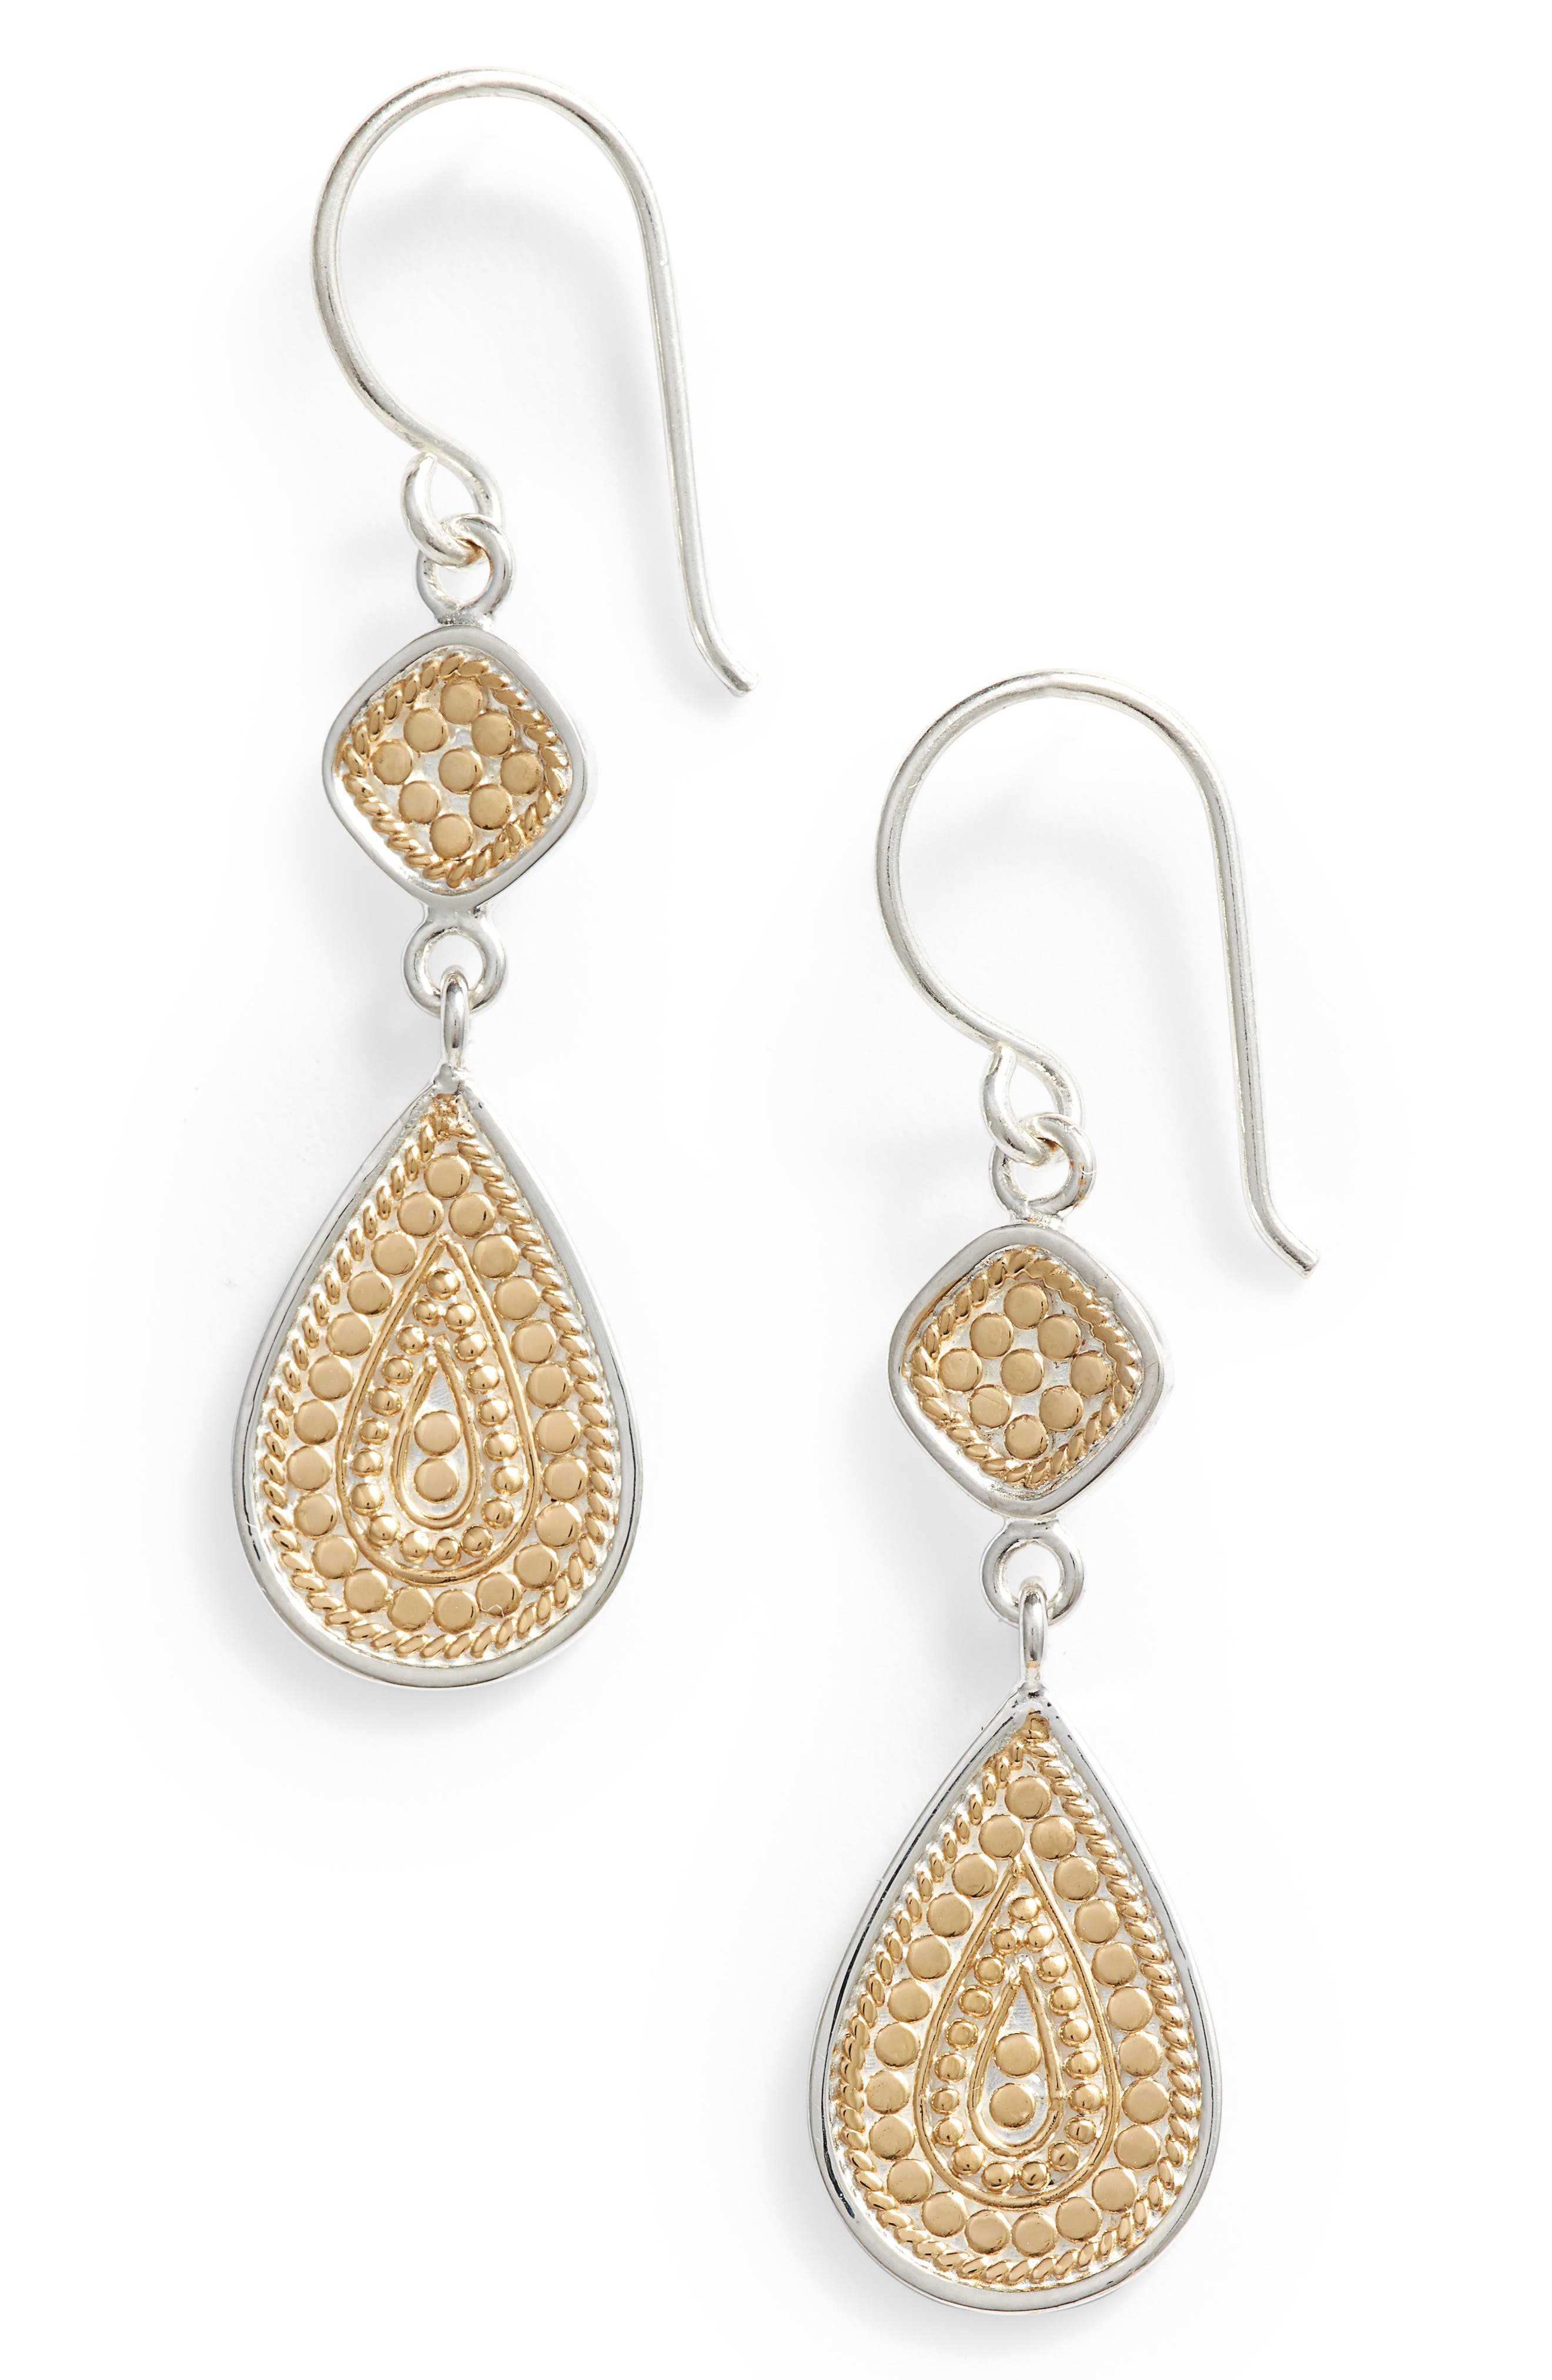 ANNA BECK Double Drop Earrings in Gold/ Silver